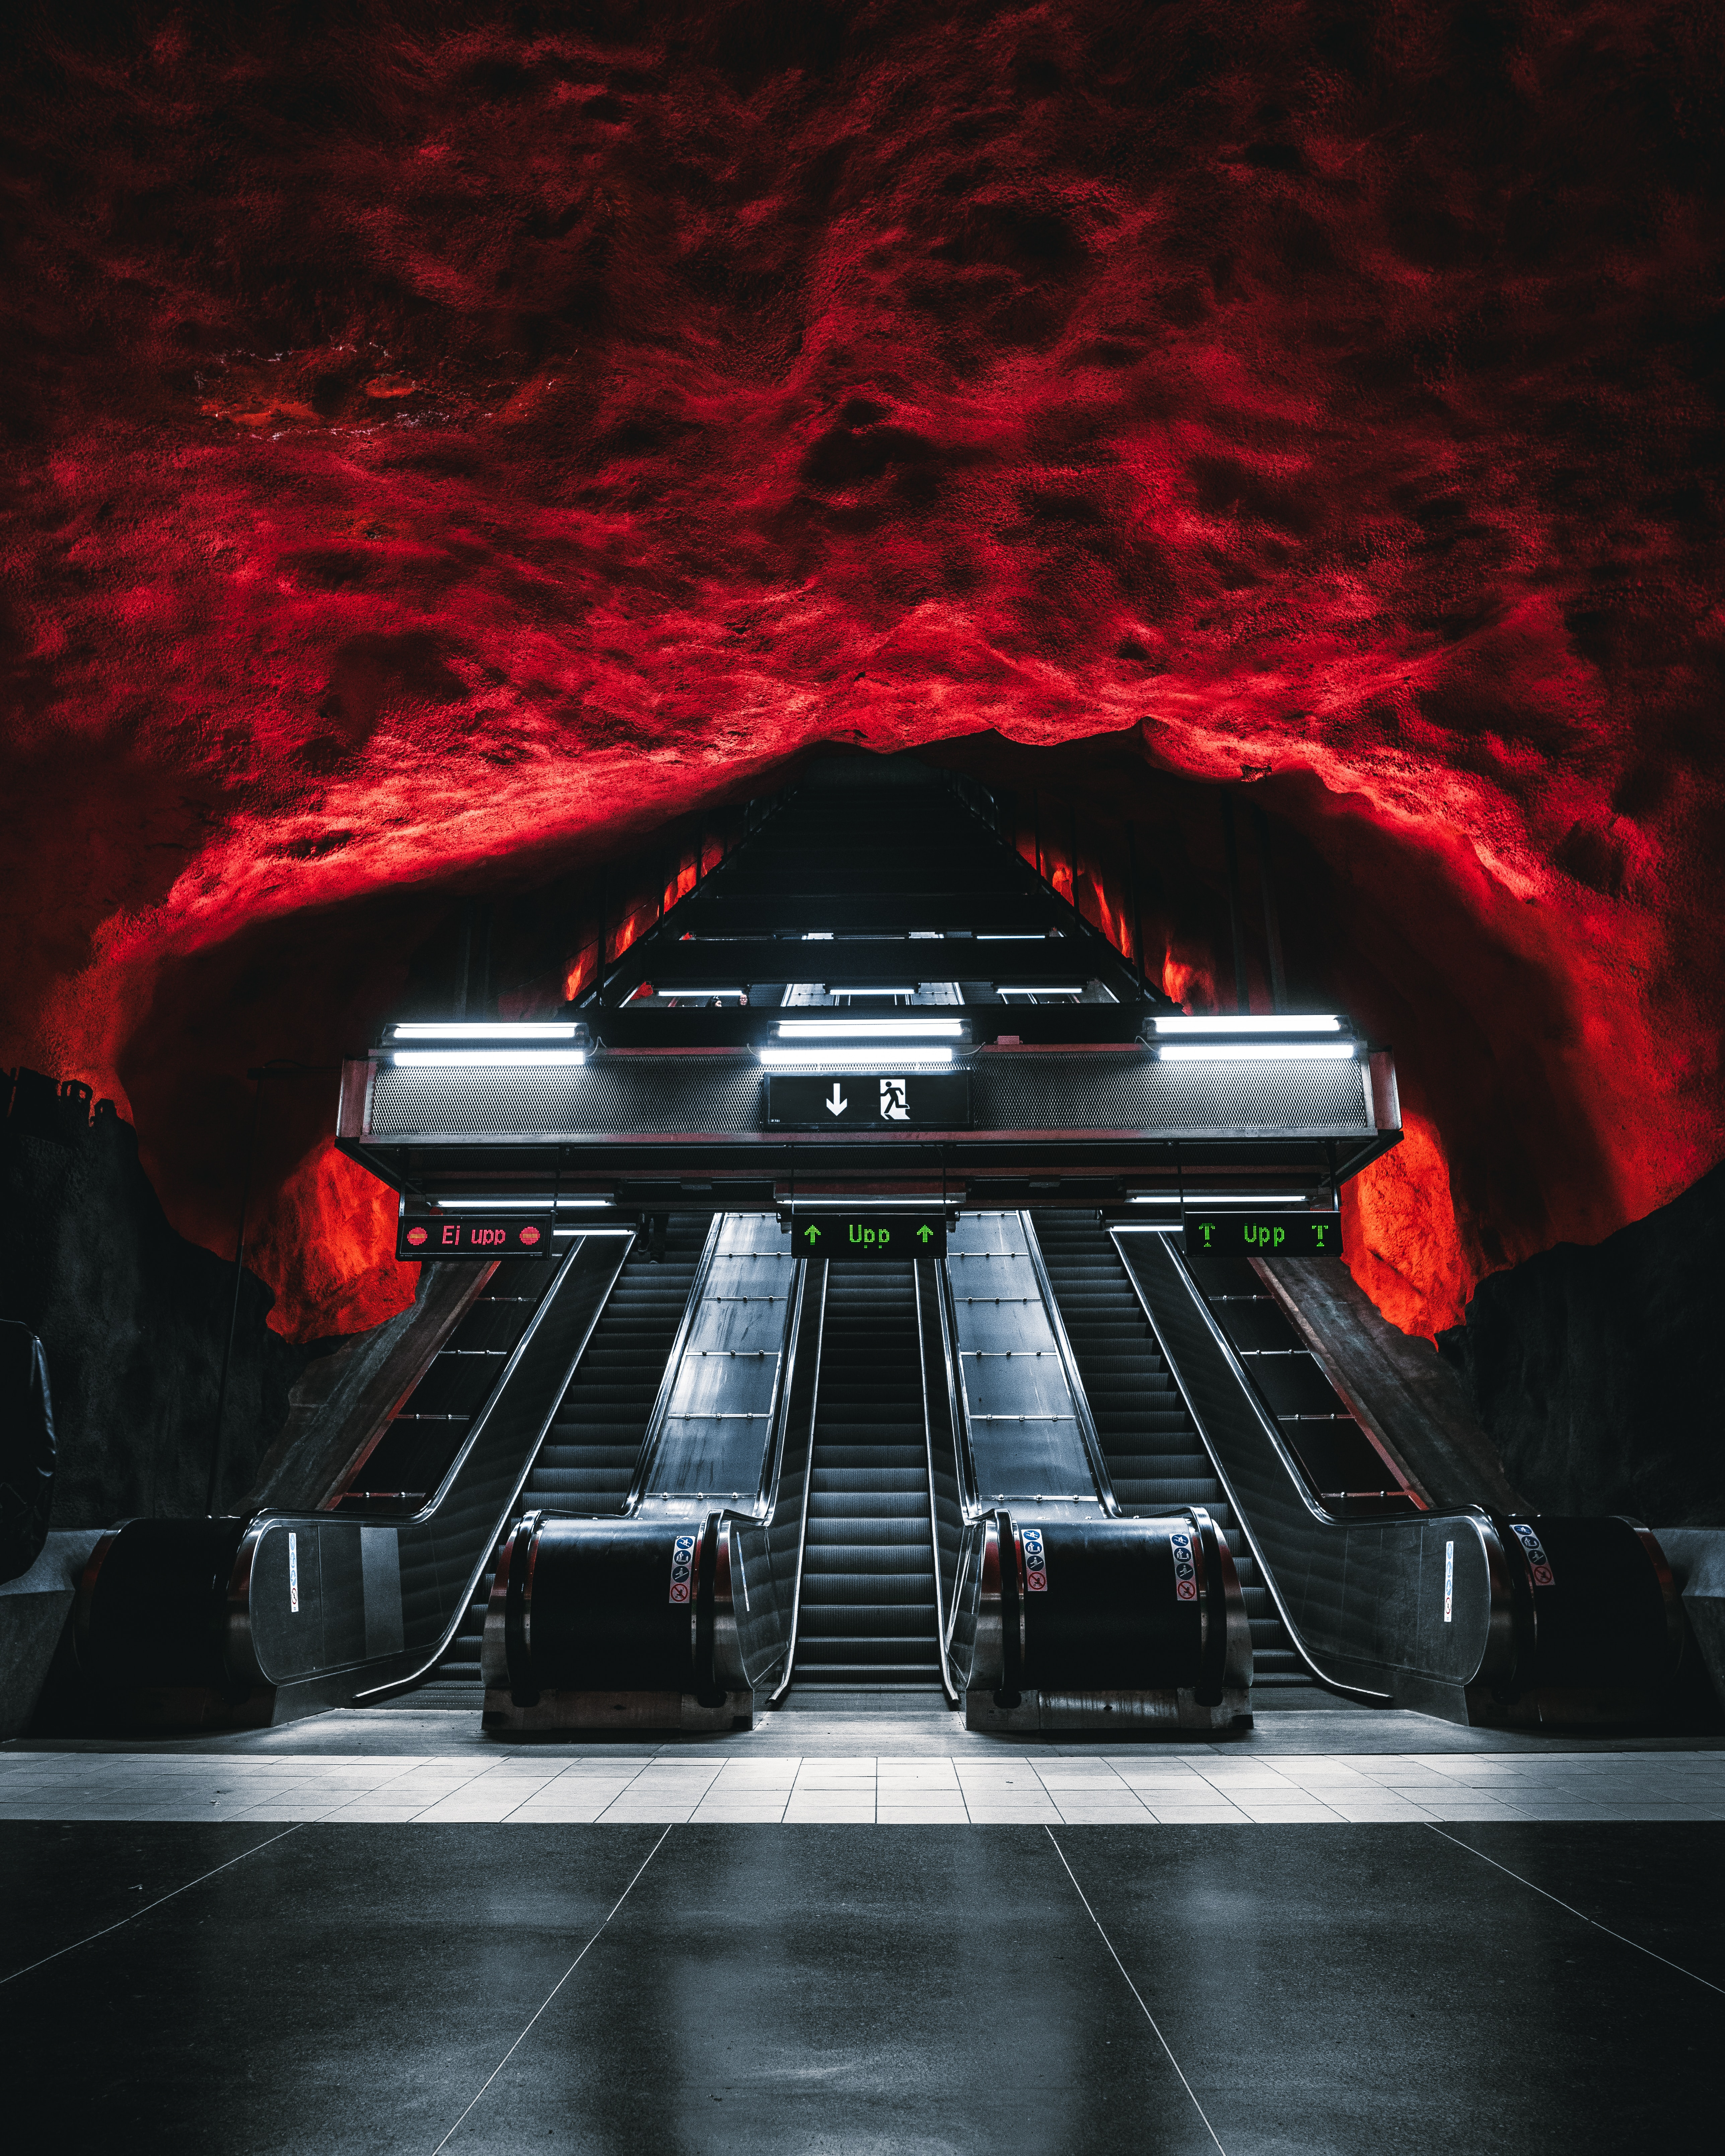 118591 Screensavers and Wallpapers Metro for phone. Download Dark, Miscellanea, Miscellaneous, Tunnel, Underground, Metro, Subway, Escalator pictures for free